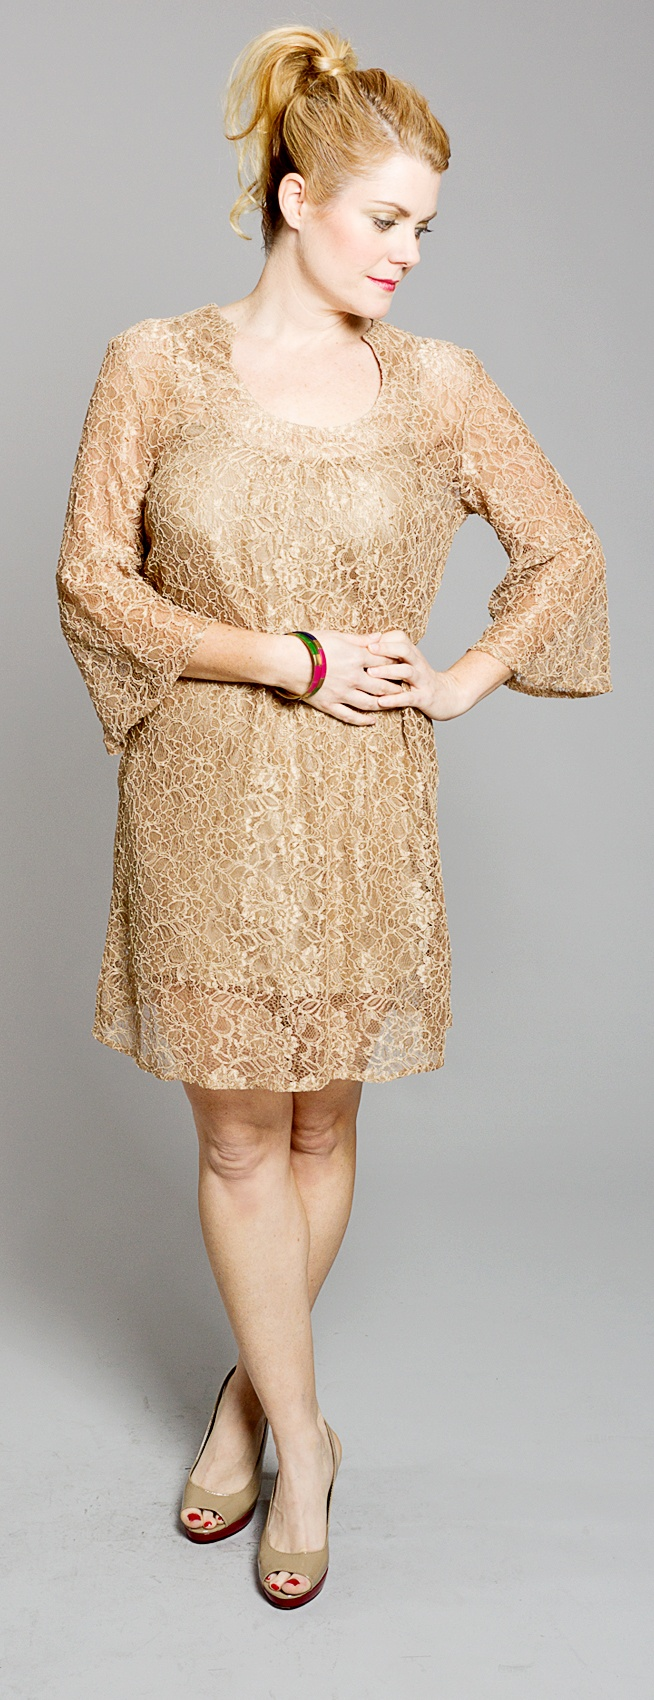 30 best 50th anniversary images on pinterest gold lace for Dresses for 50th wedding anniversary party